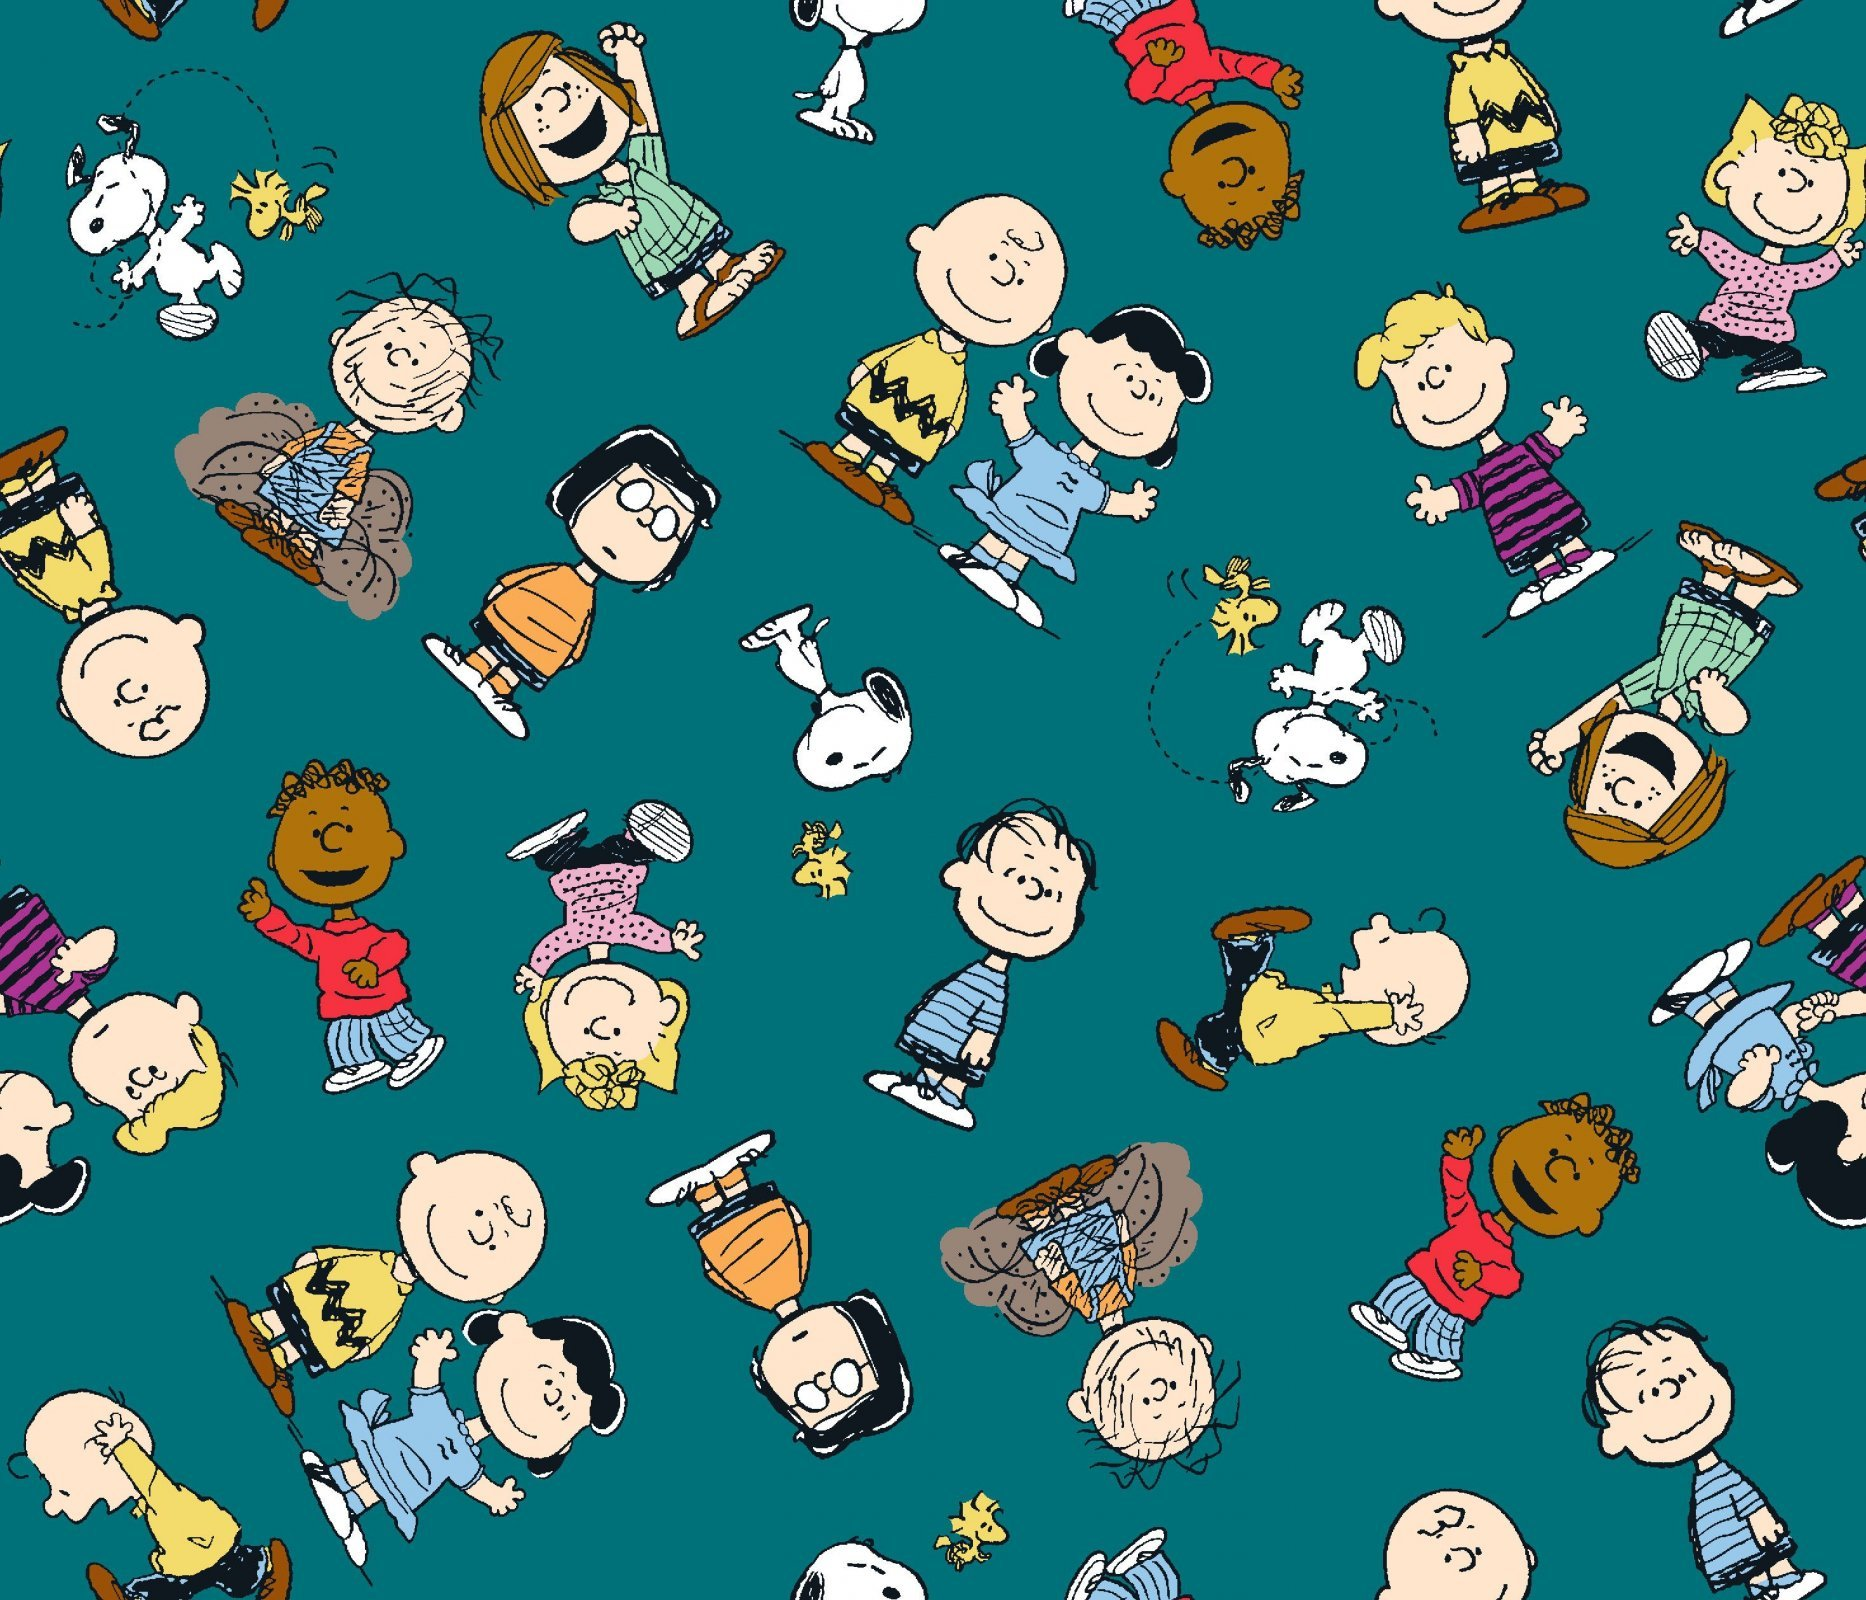 Charlie Brown Peanuts 68129 Gangs All Here Teal